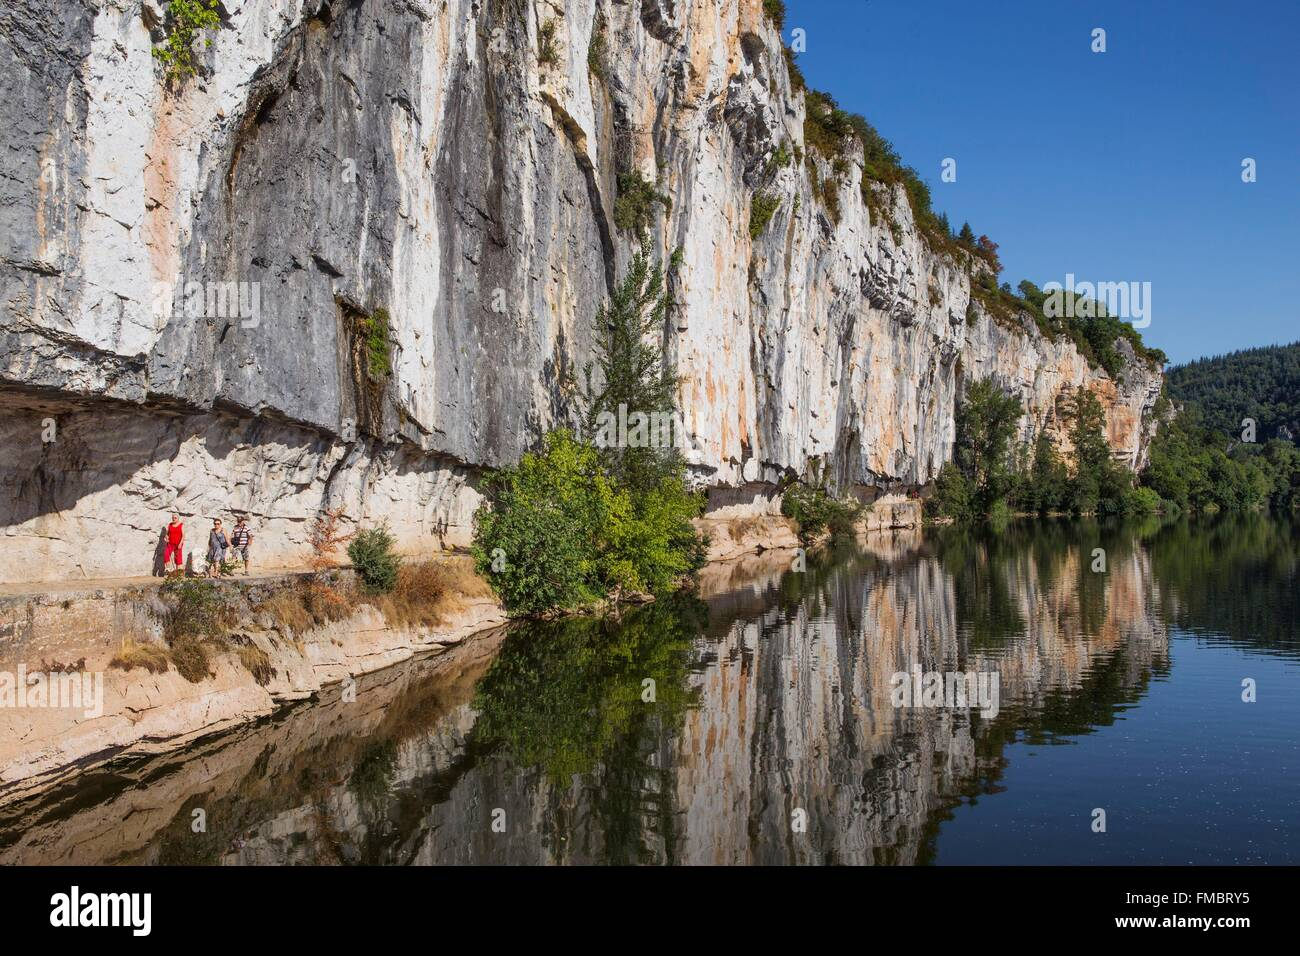 France, Lot, between Saint Cirq Lapopie and Bouzies, the Ganil towpath along the Lot river - Stock Image